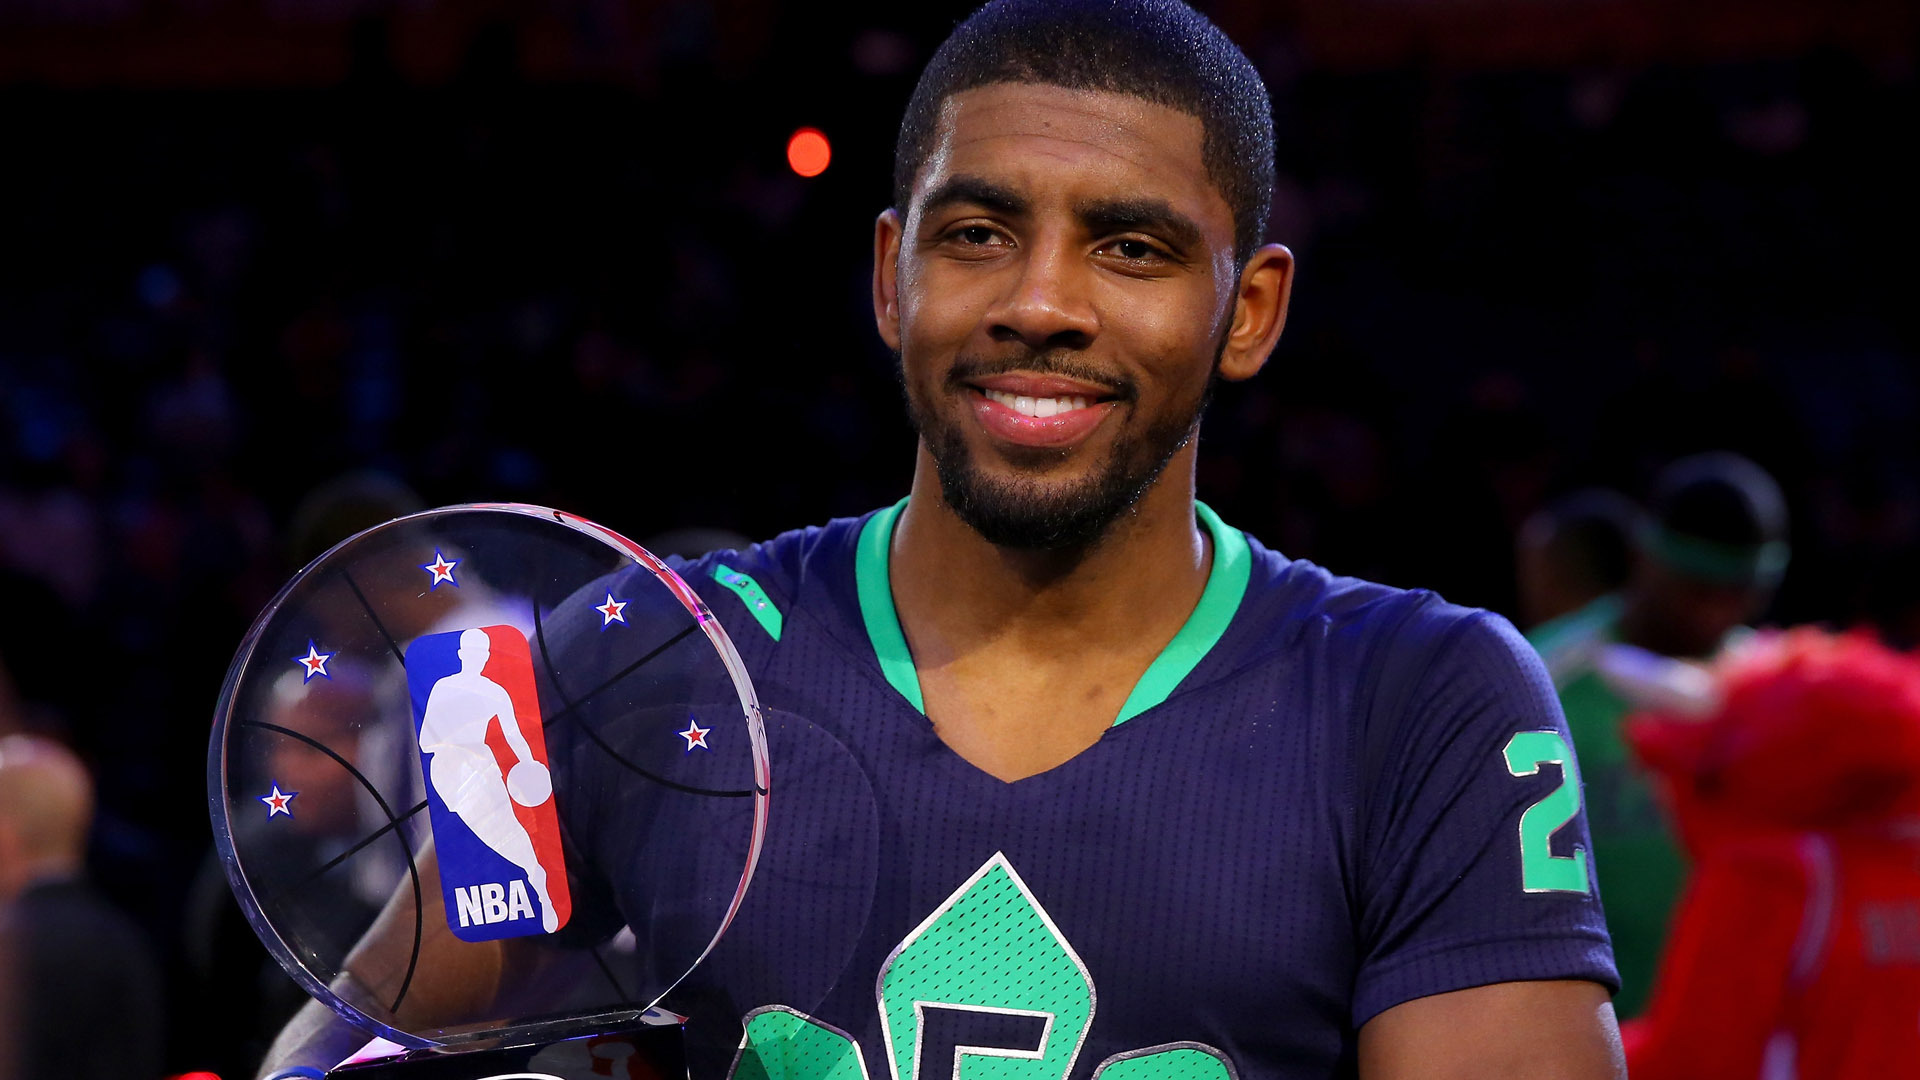 kyrie irving wallpapers images photos pictures backgrounds